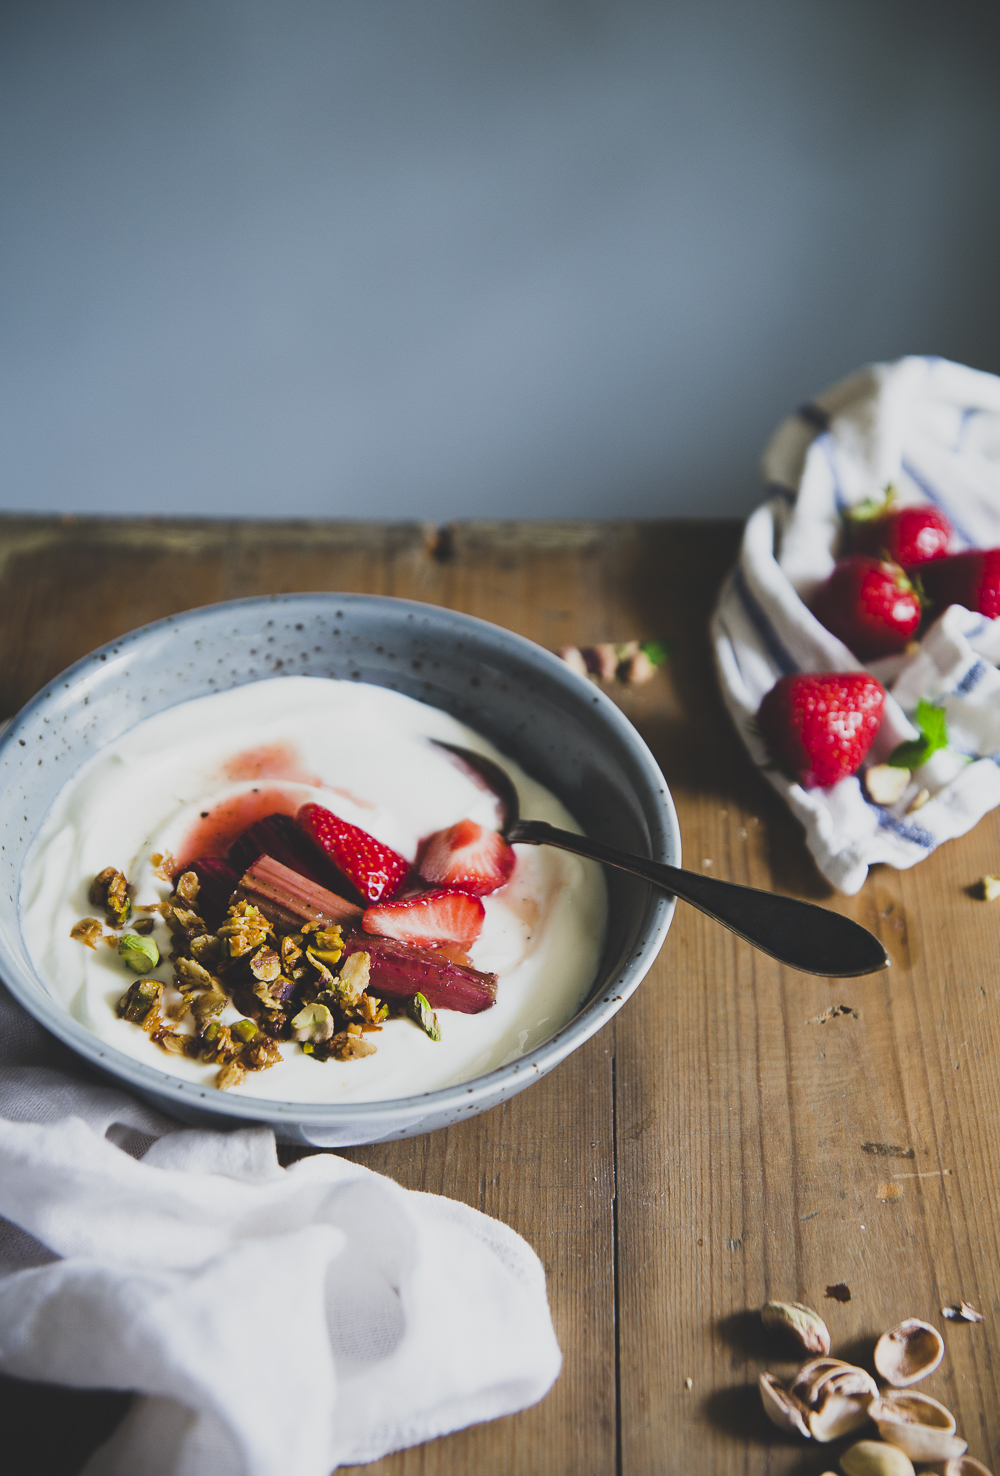 Vanilla Poached Rhubarb with Yoghurt & Pistachio Crumble | Cashew Kitchen